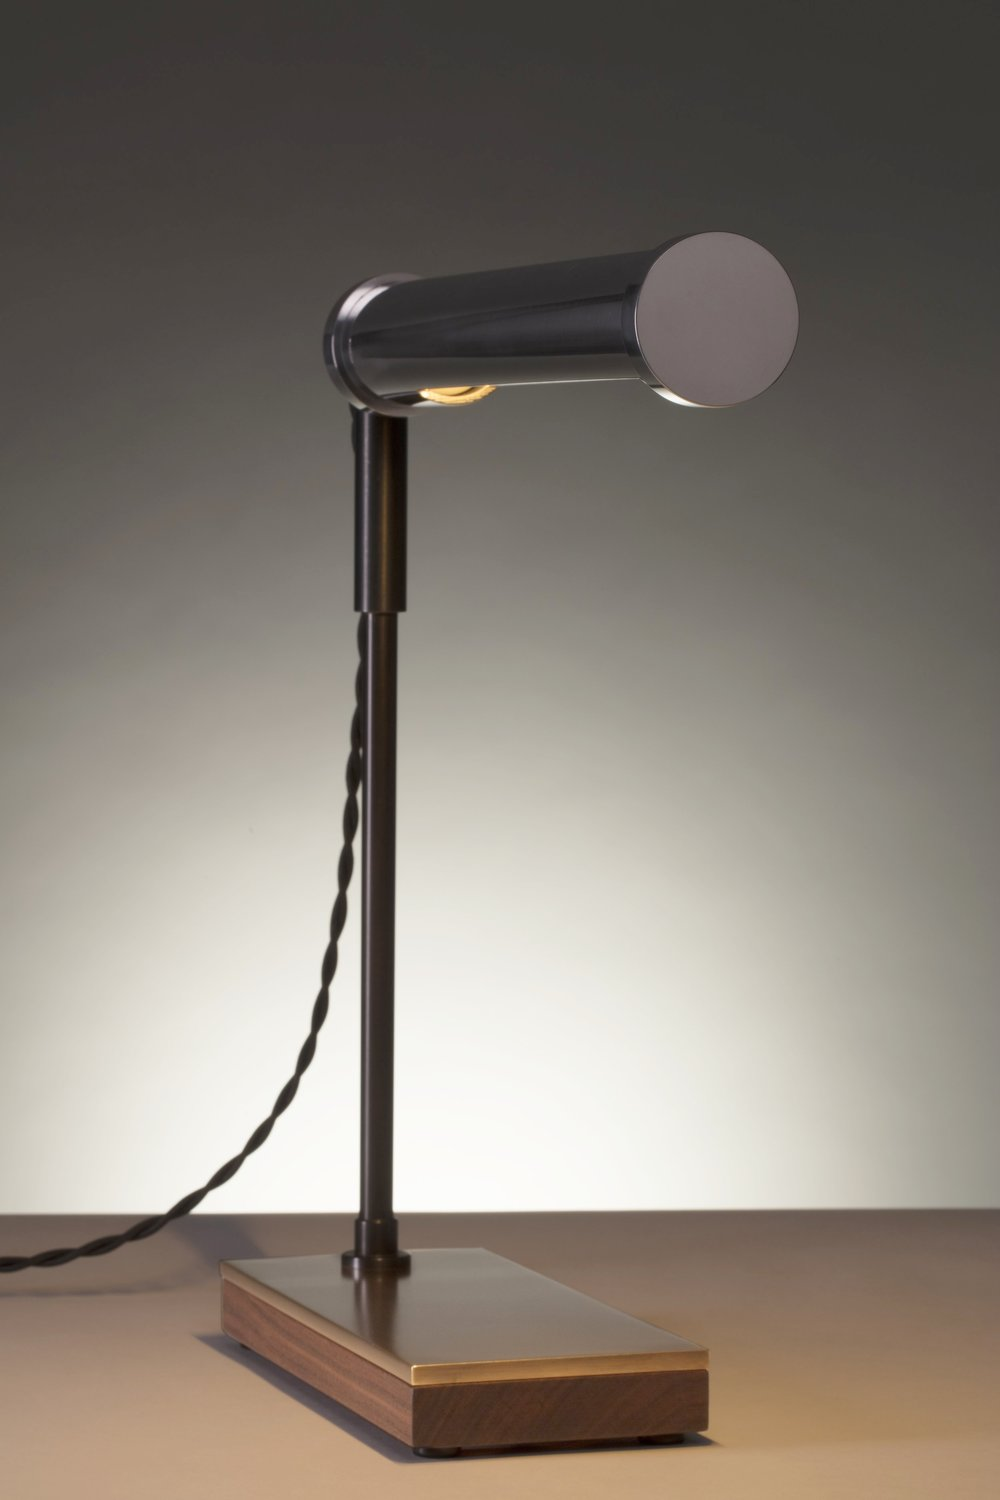 Cylinder Lamp by APD Argosy Product Division